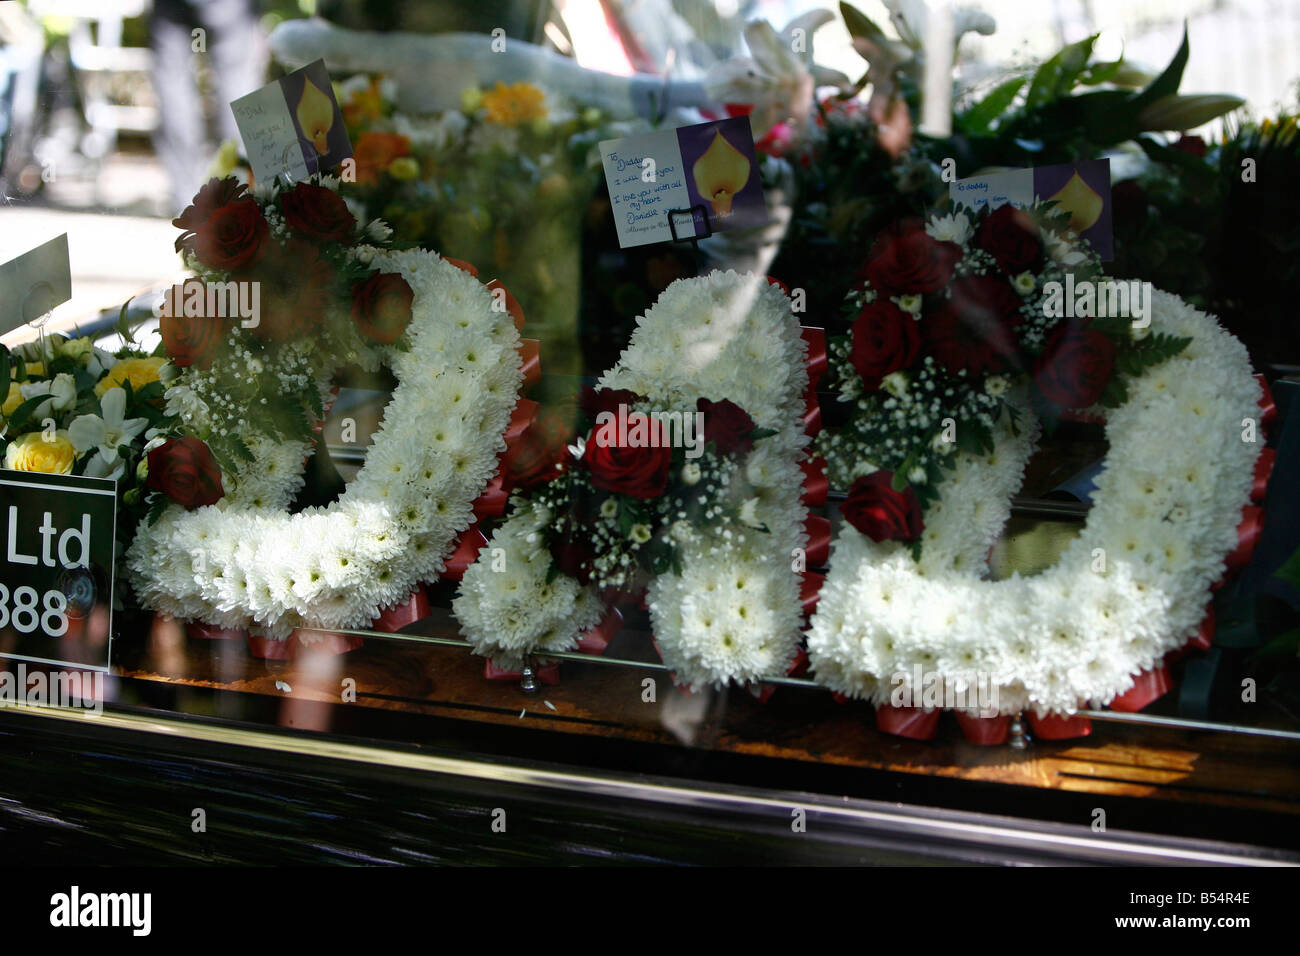 Funeral of gary newlove killed by a mob outside his warrington home funeral of gary newlove killed by a mob outside his warrington home flowers from his three daughters spelling the word dad izmirmasajfo